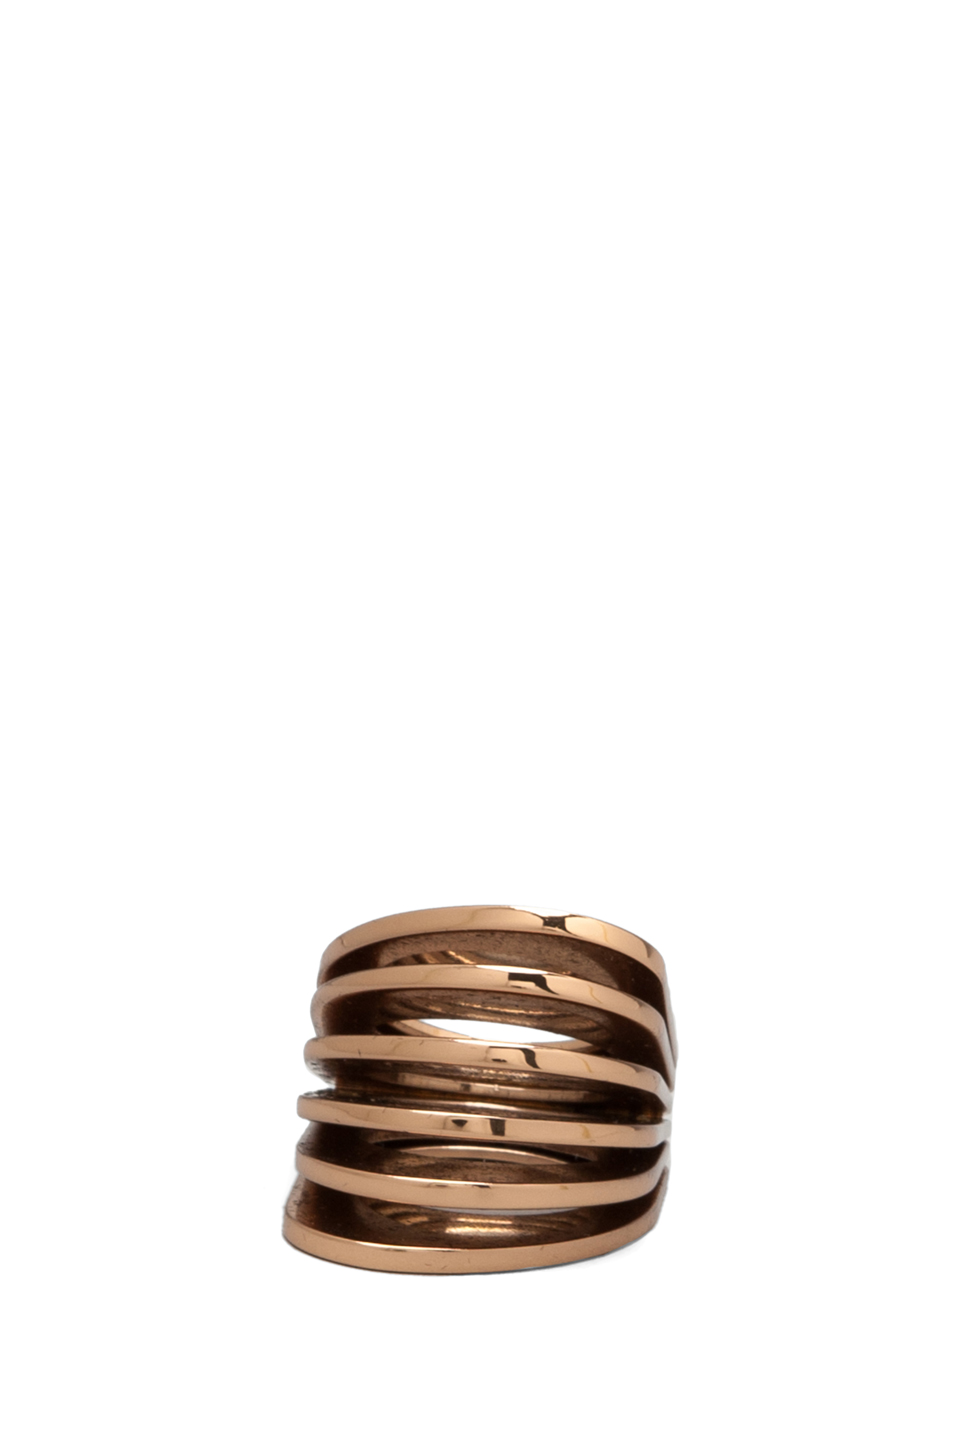 Vita Fede Futturo Ring in Rosegold from REVOLVEclothing.com